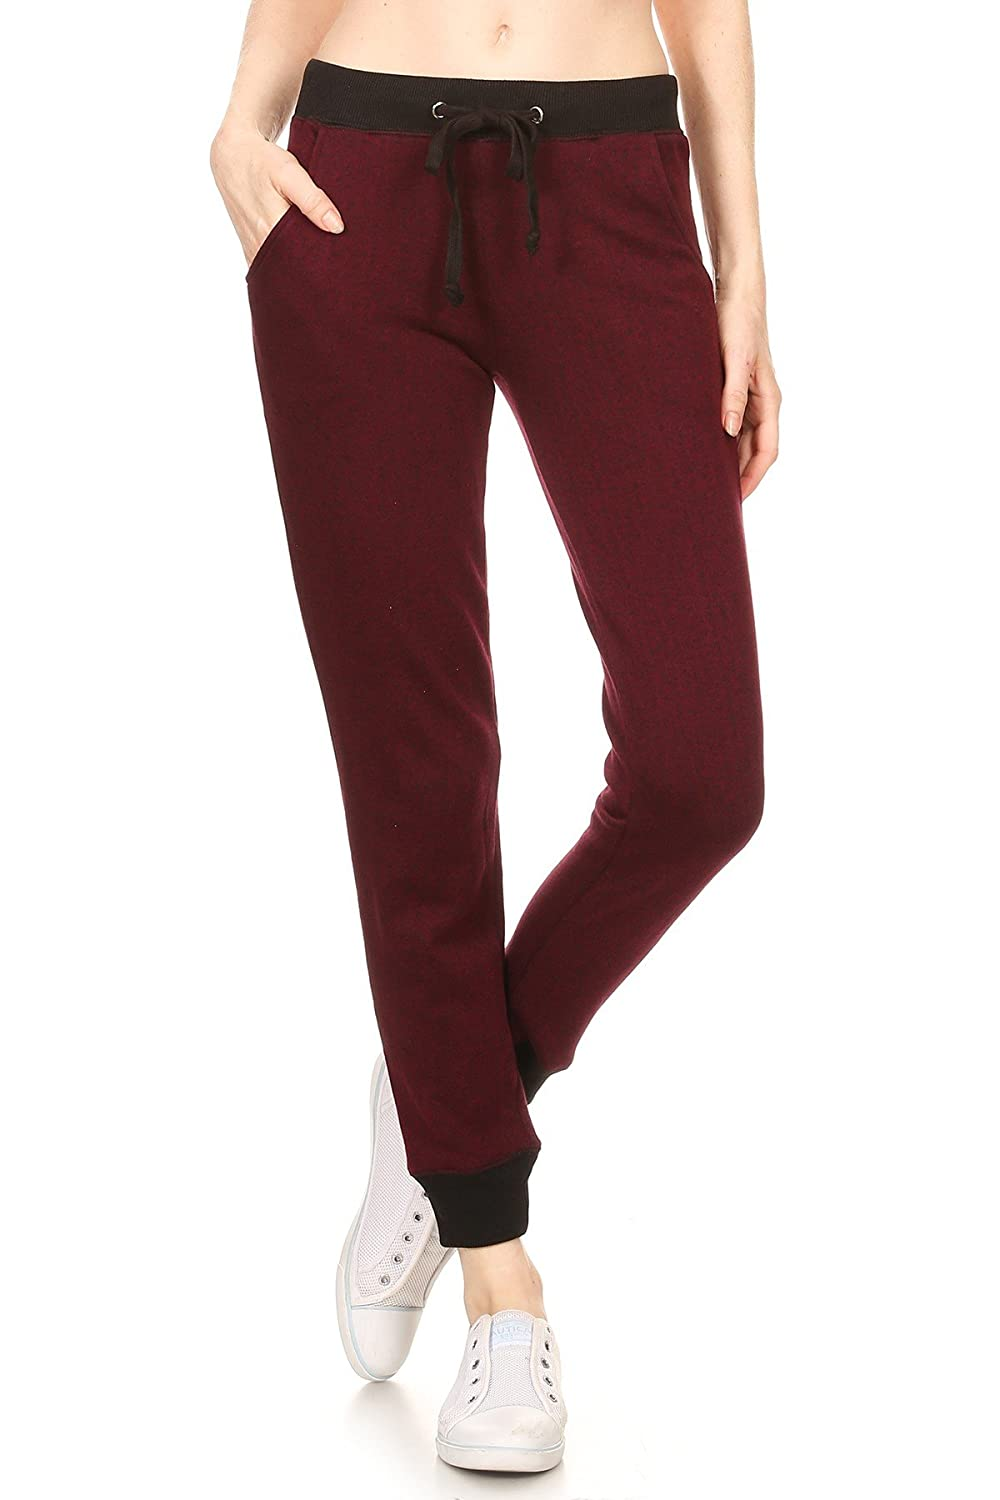 RouA Women's French Terry Jogger Sweatpants with Pockets